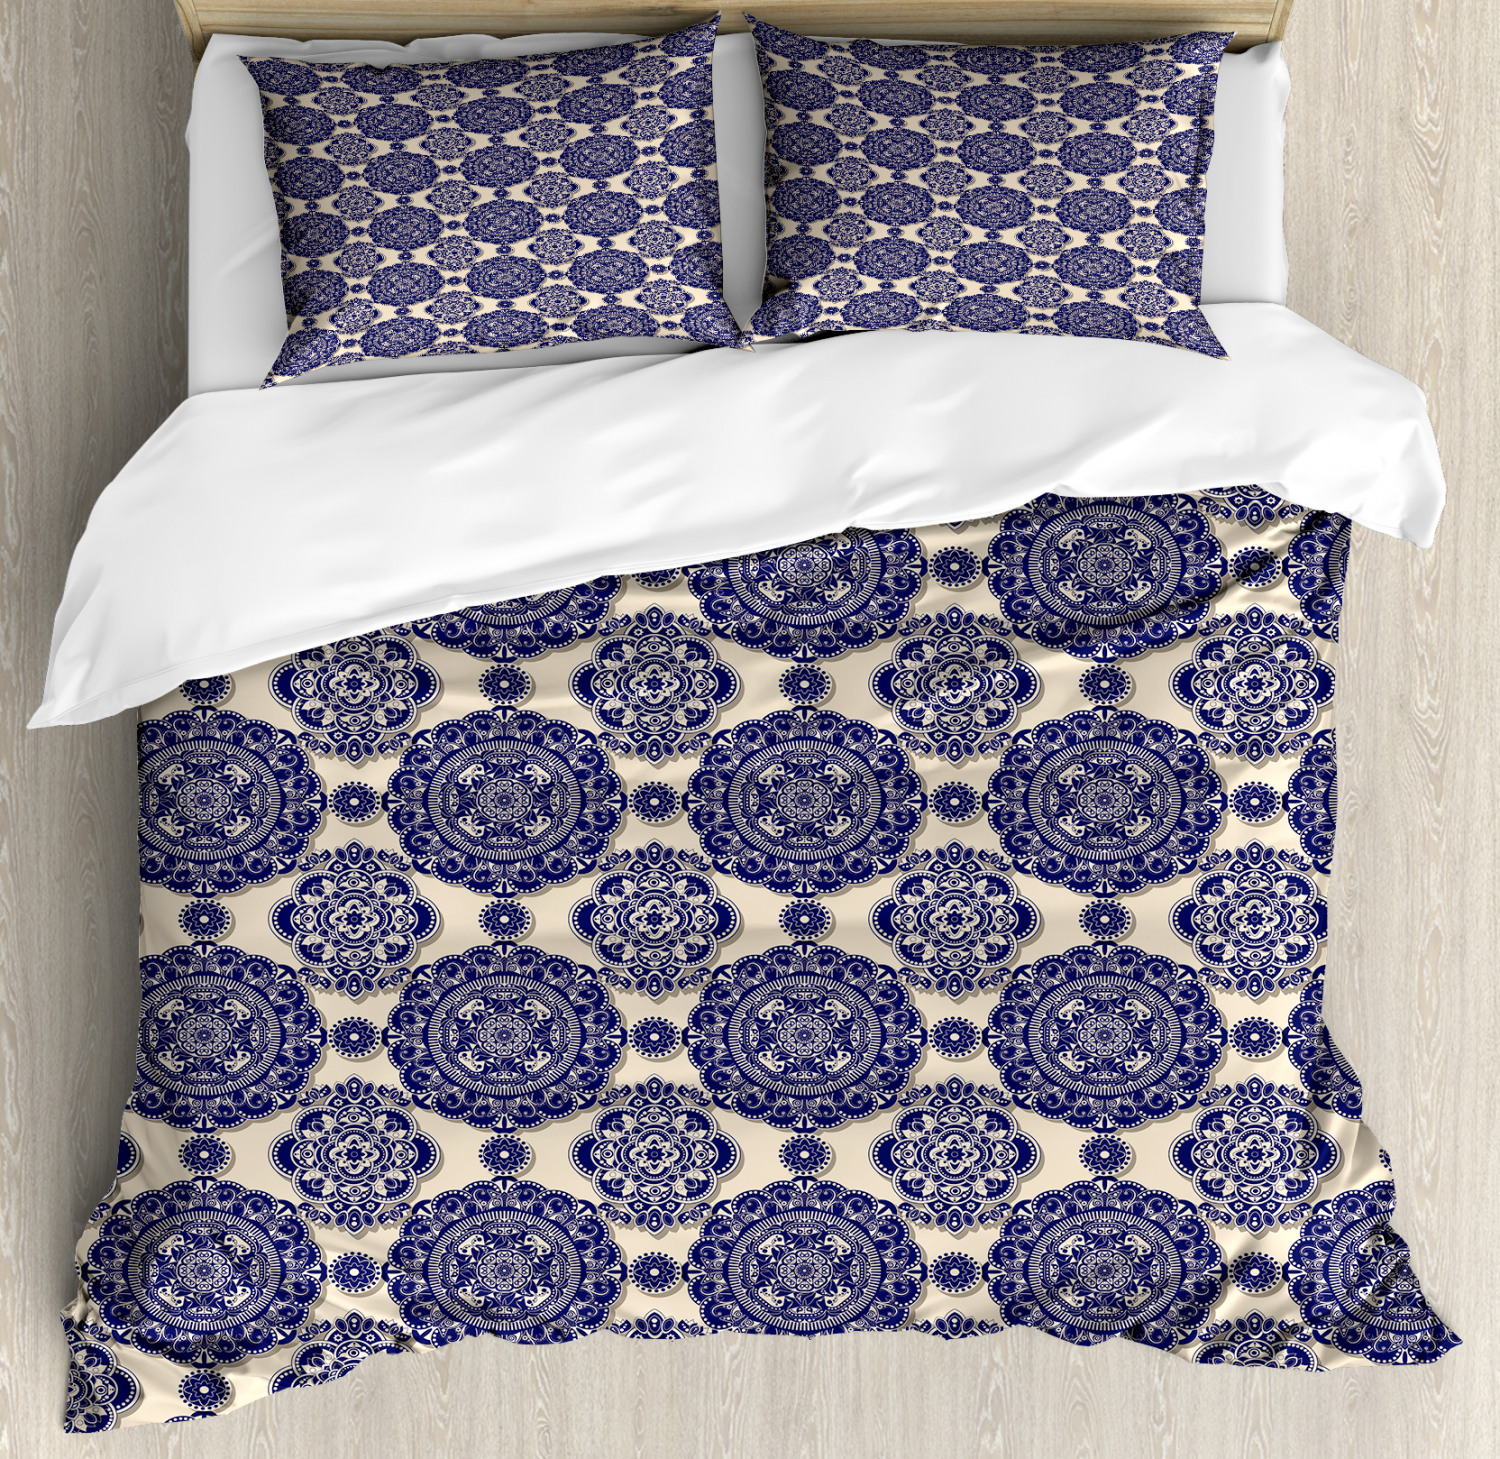 Mandala Duvet Cover Set with Pillow Shams Medieval Exotic Revival Print